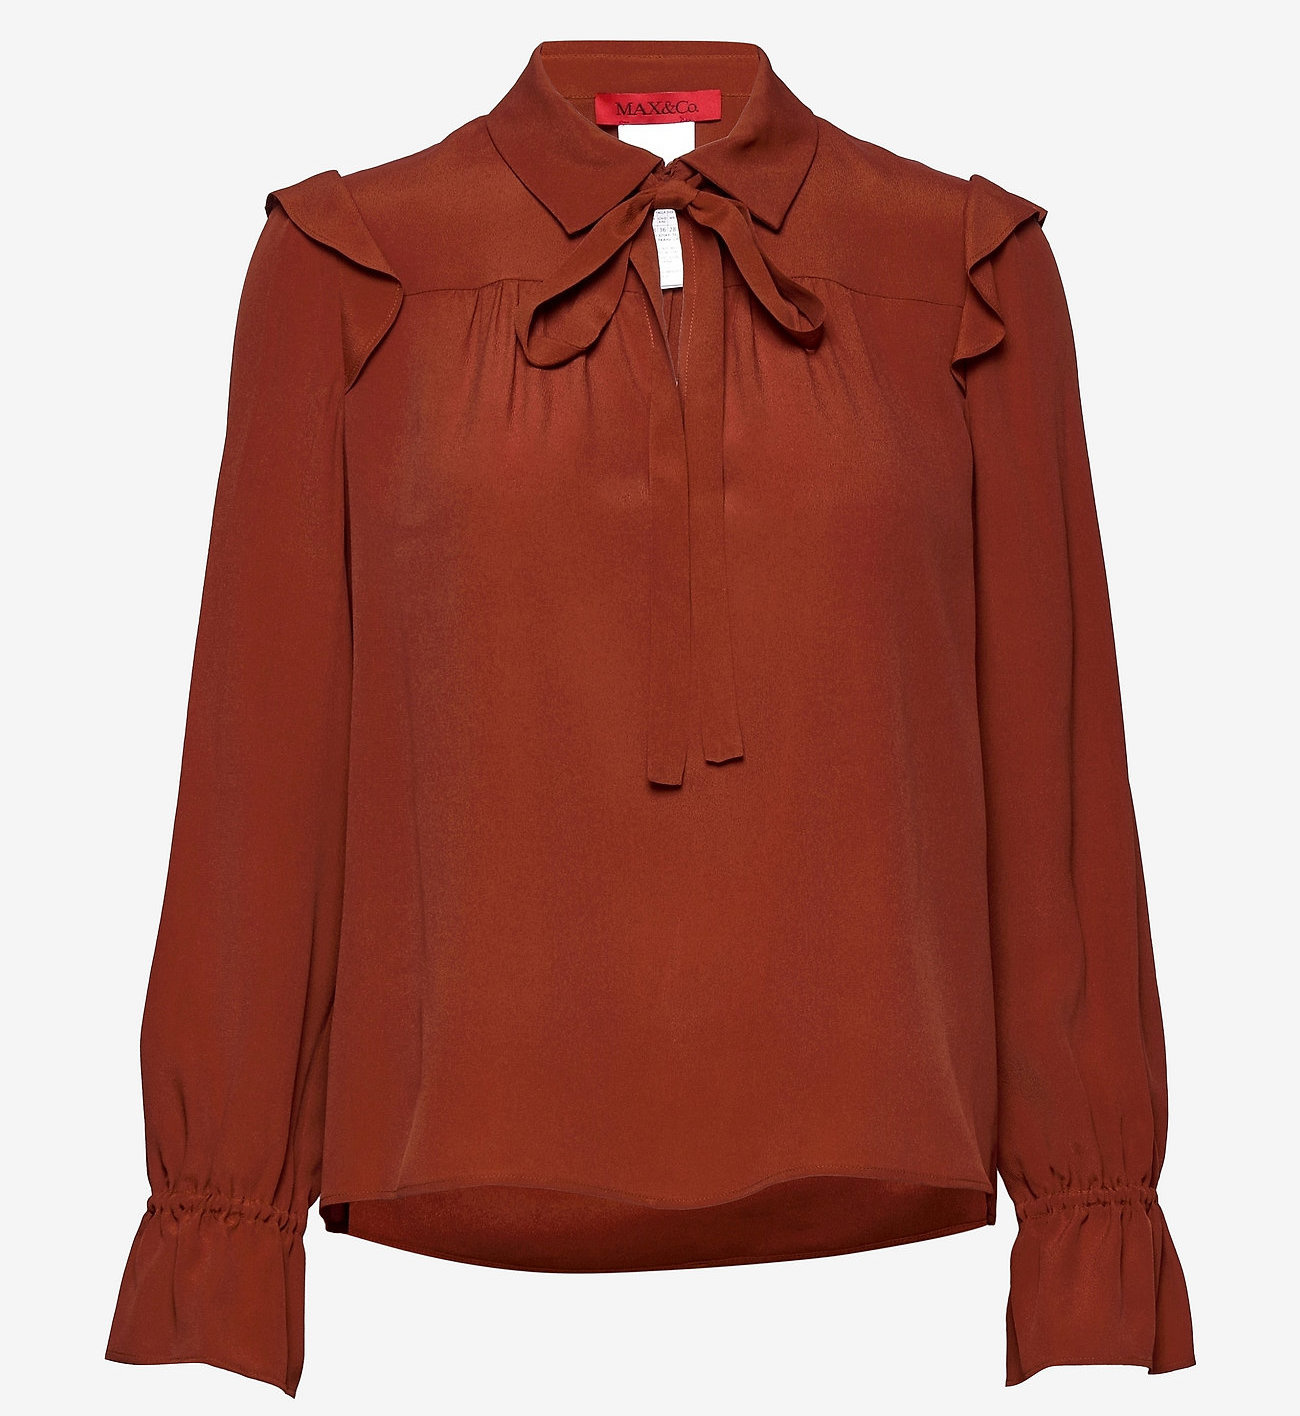 Max&Co. dames blouse, rood